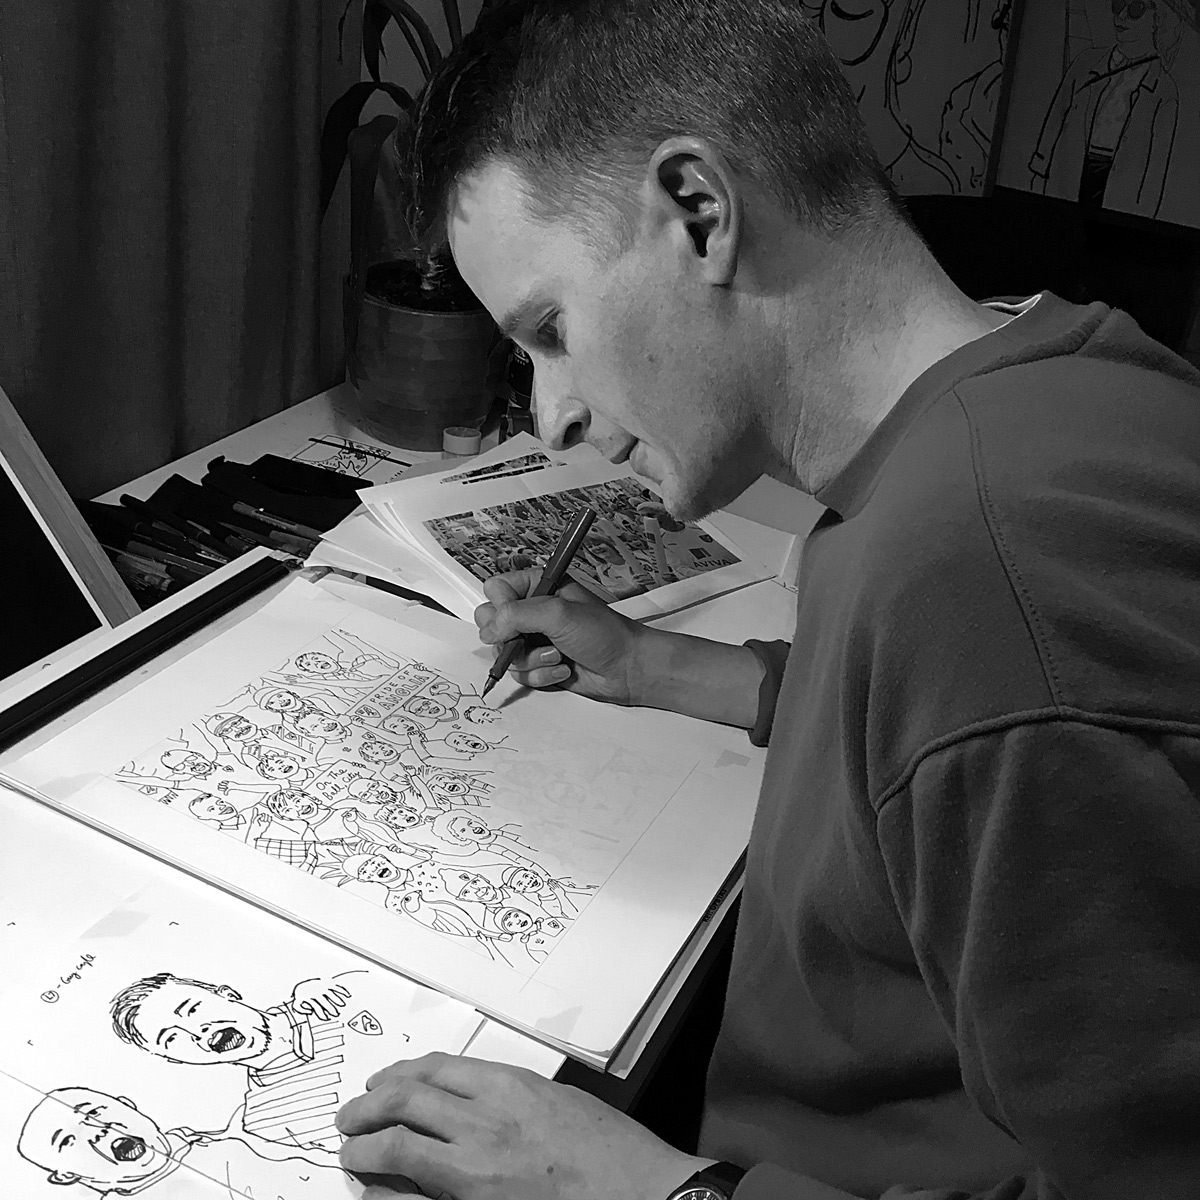 Drawing the final linework